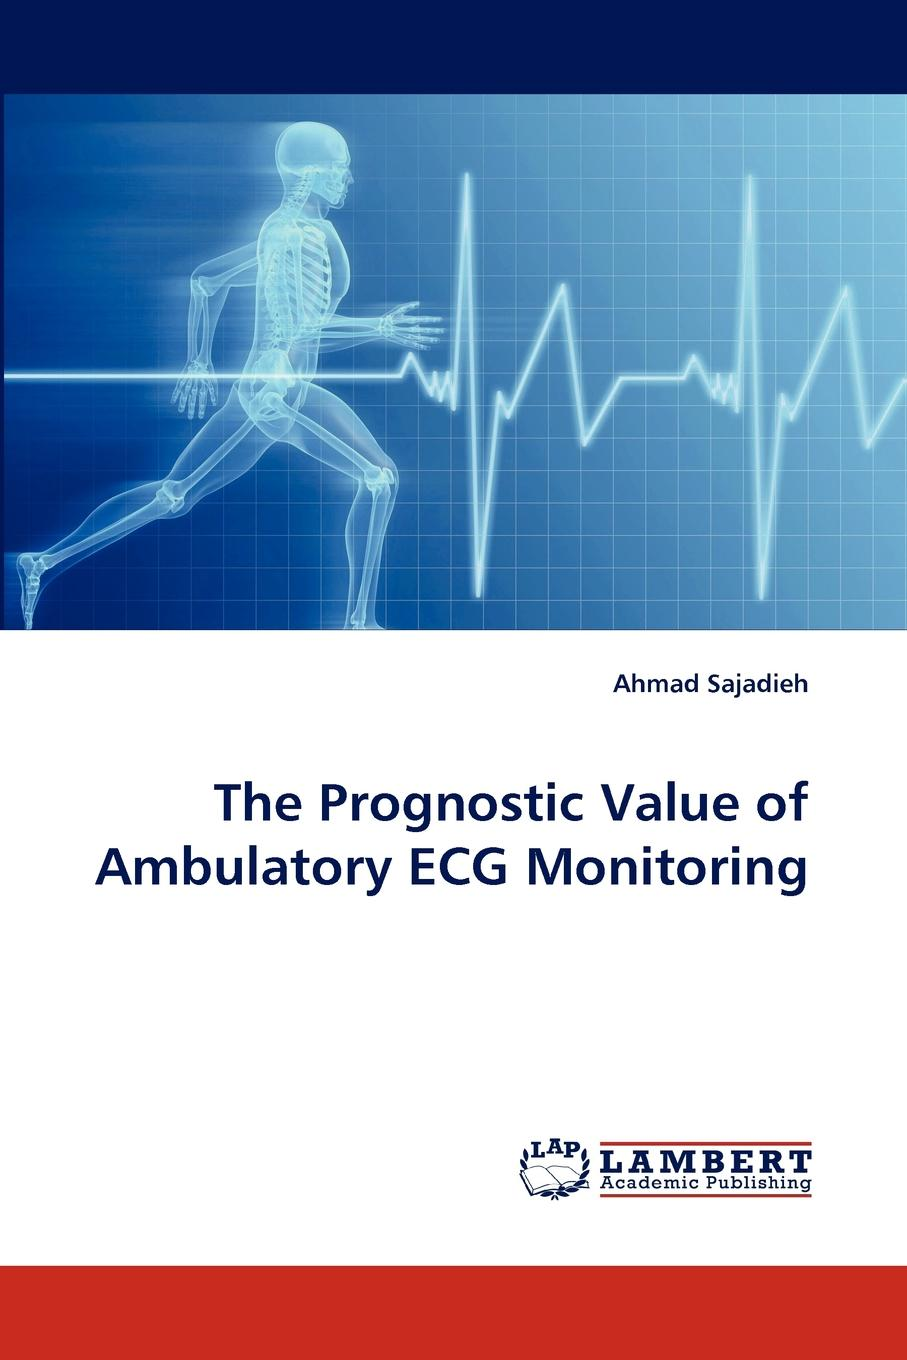 Ahmad Sajadieh The Prognostic Value of Ambulatory ECG Monitoring butta singh entropy and heart rate variability